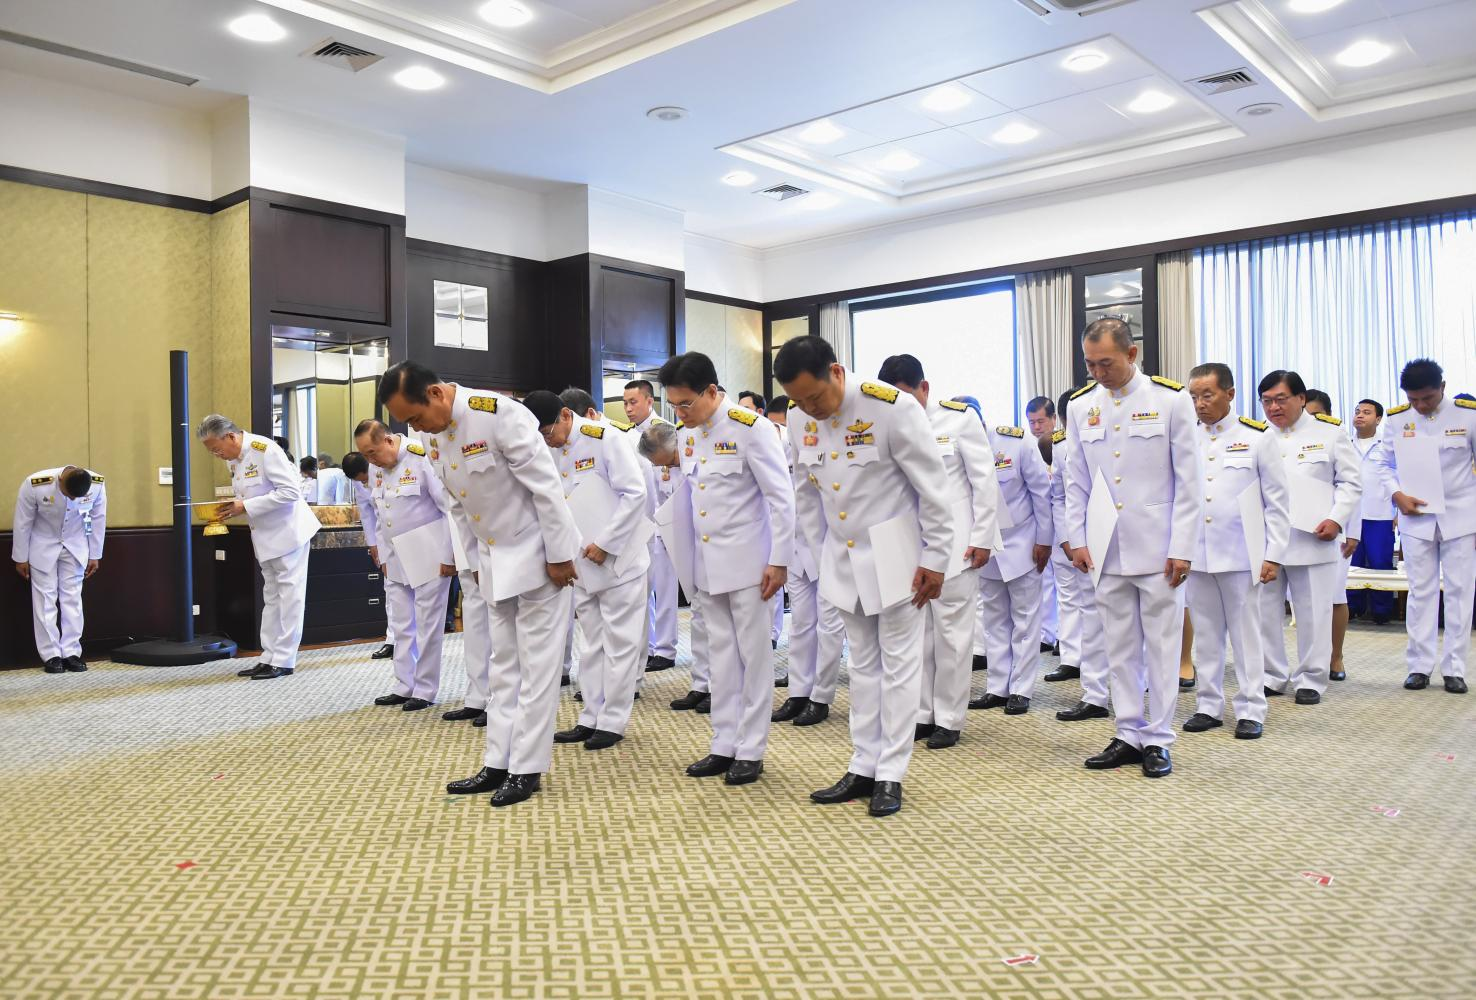 Prime Minister Prayut Chan-o-cha leads his cabinet earlier this week at the reception room of the Command Building in receiving a written message from His Majesty the King.Royal Thai Government House